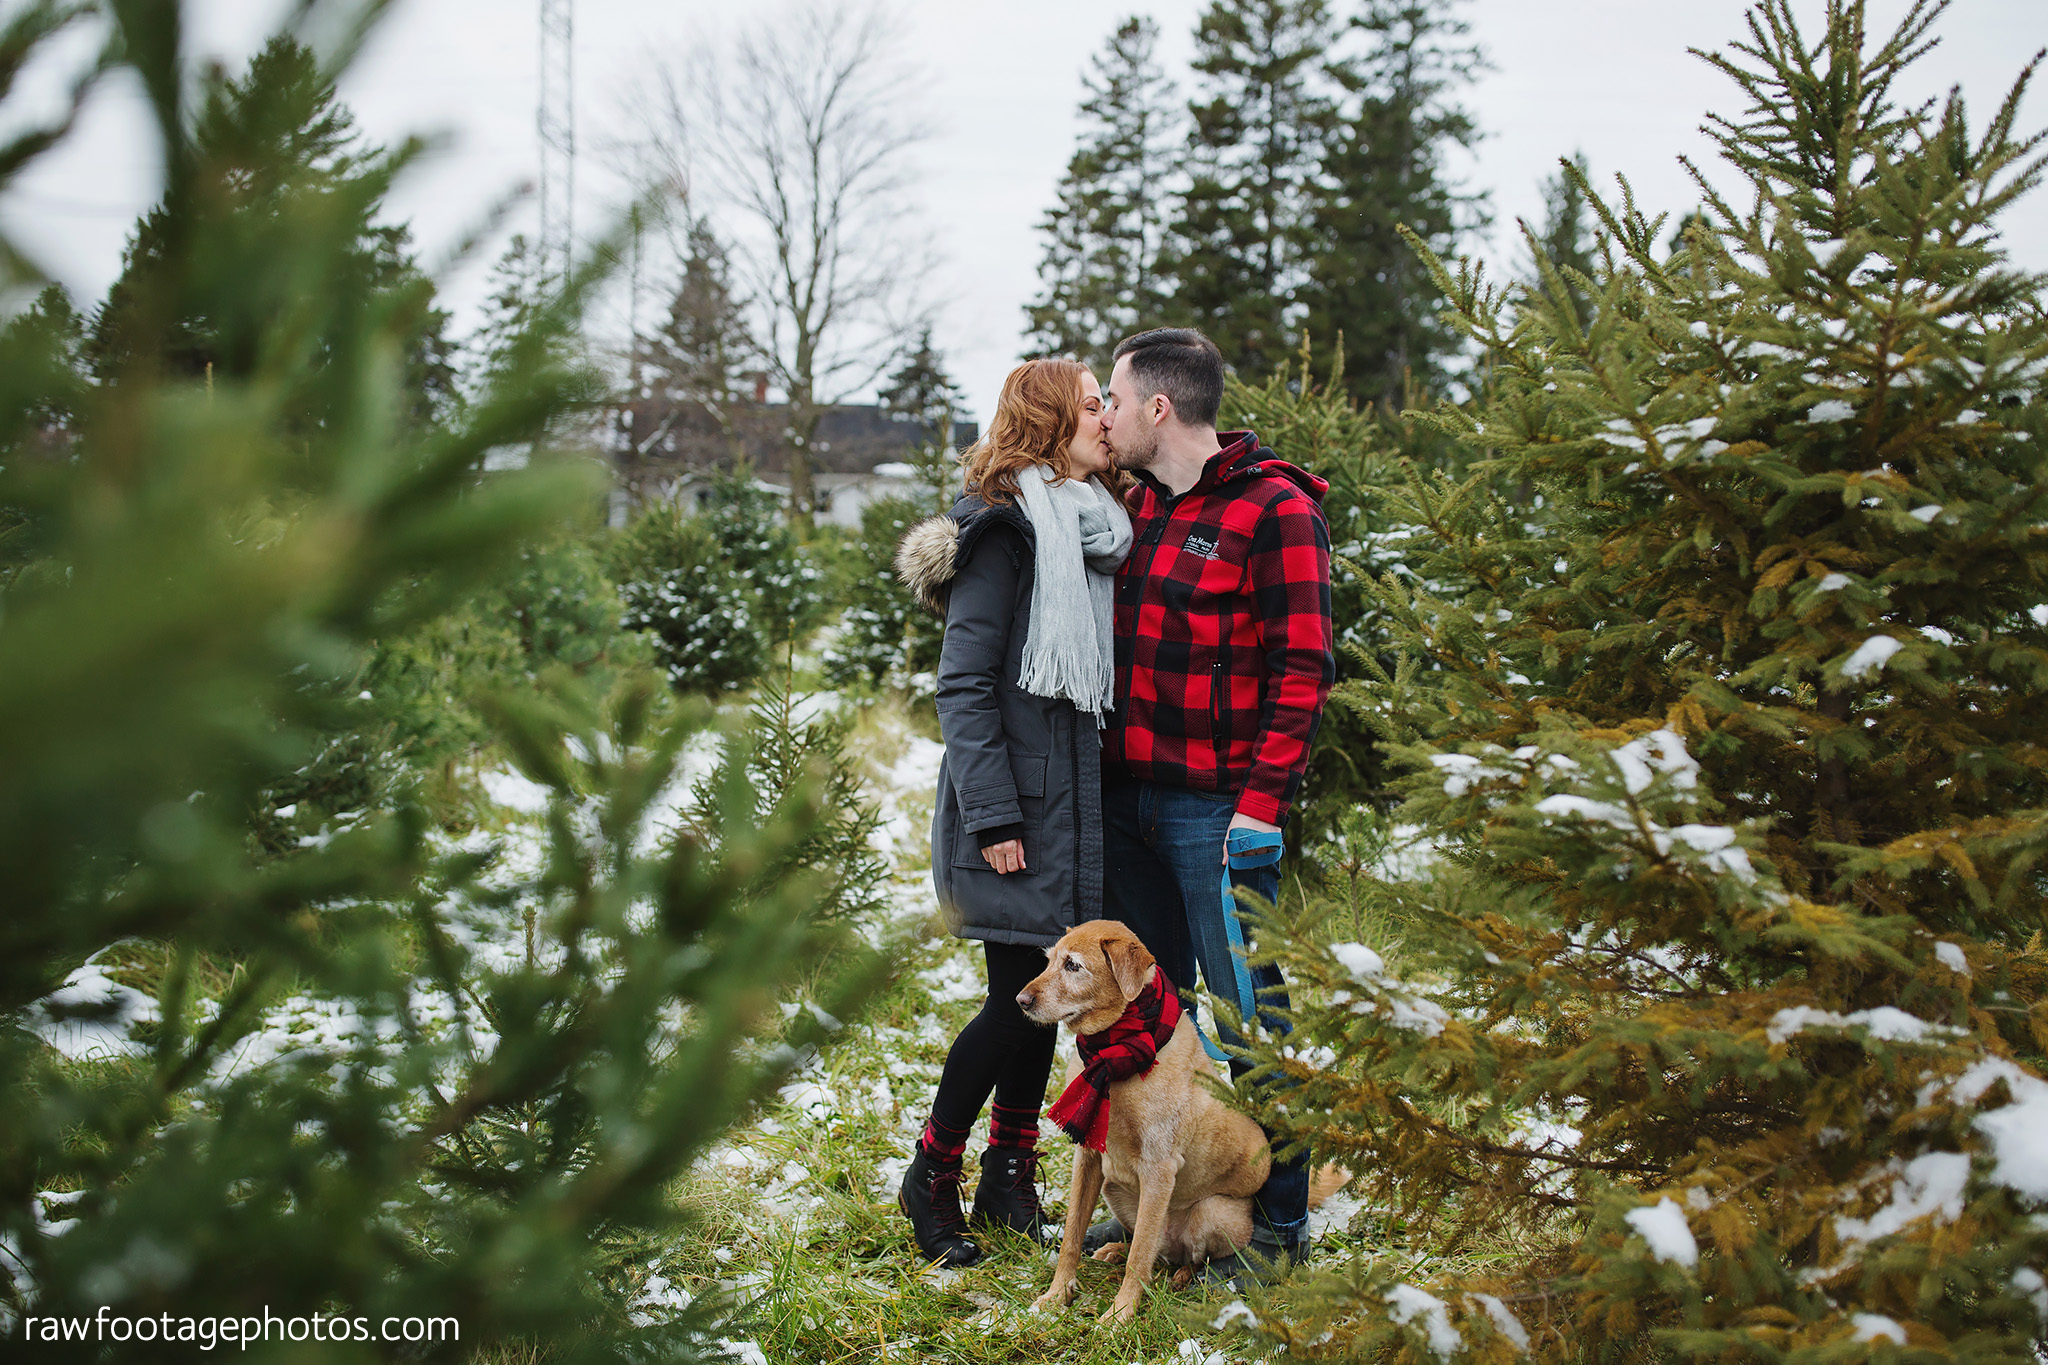 london_ontario_family_photographer-raw_footage_photography-tree_farm_minis-christmas_sessions-winter0015.jpg